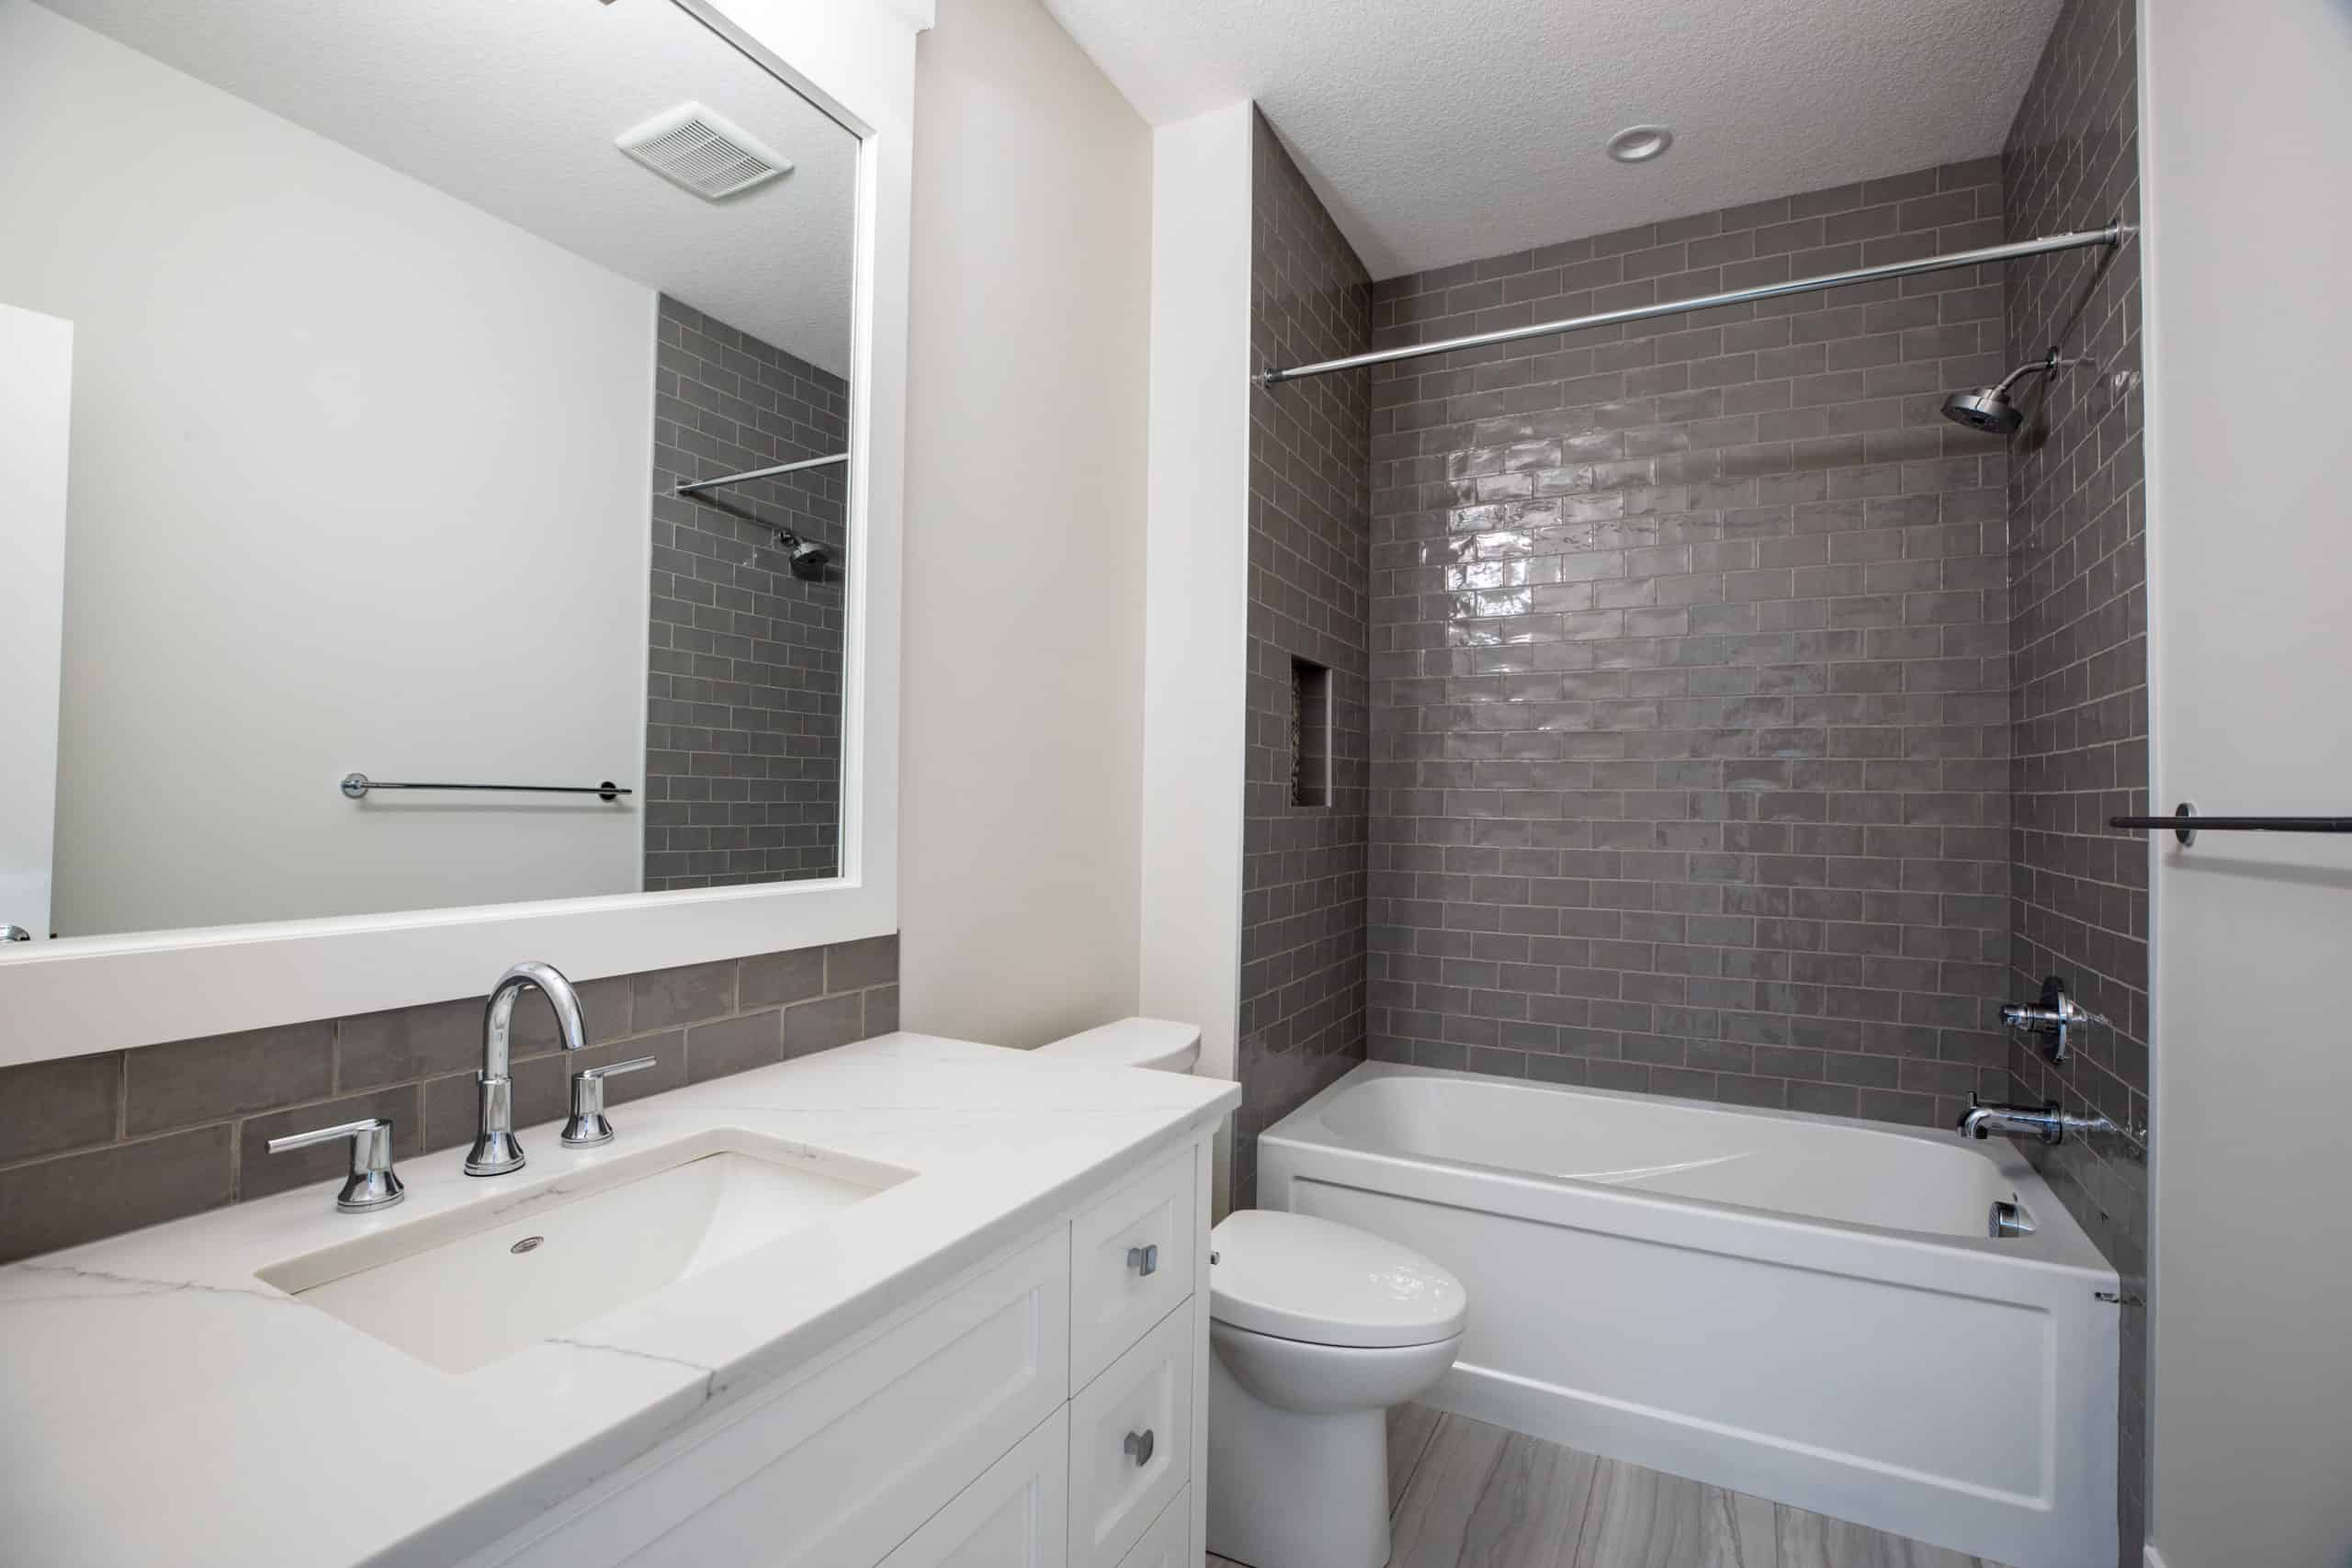 North Glenmore Park Modern Bungalow Bathroom